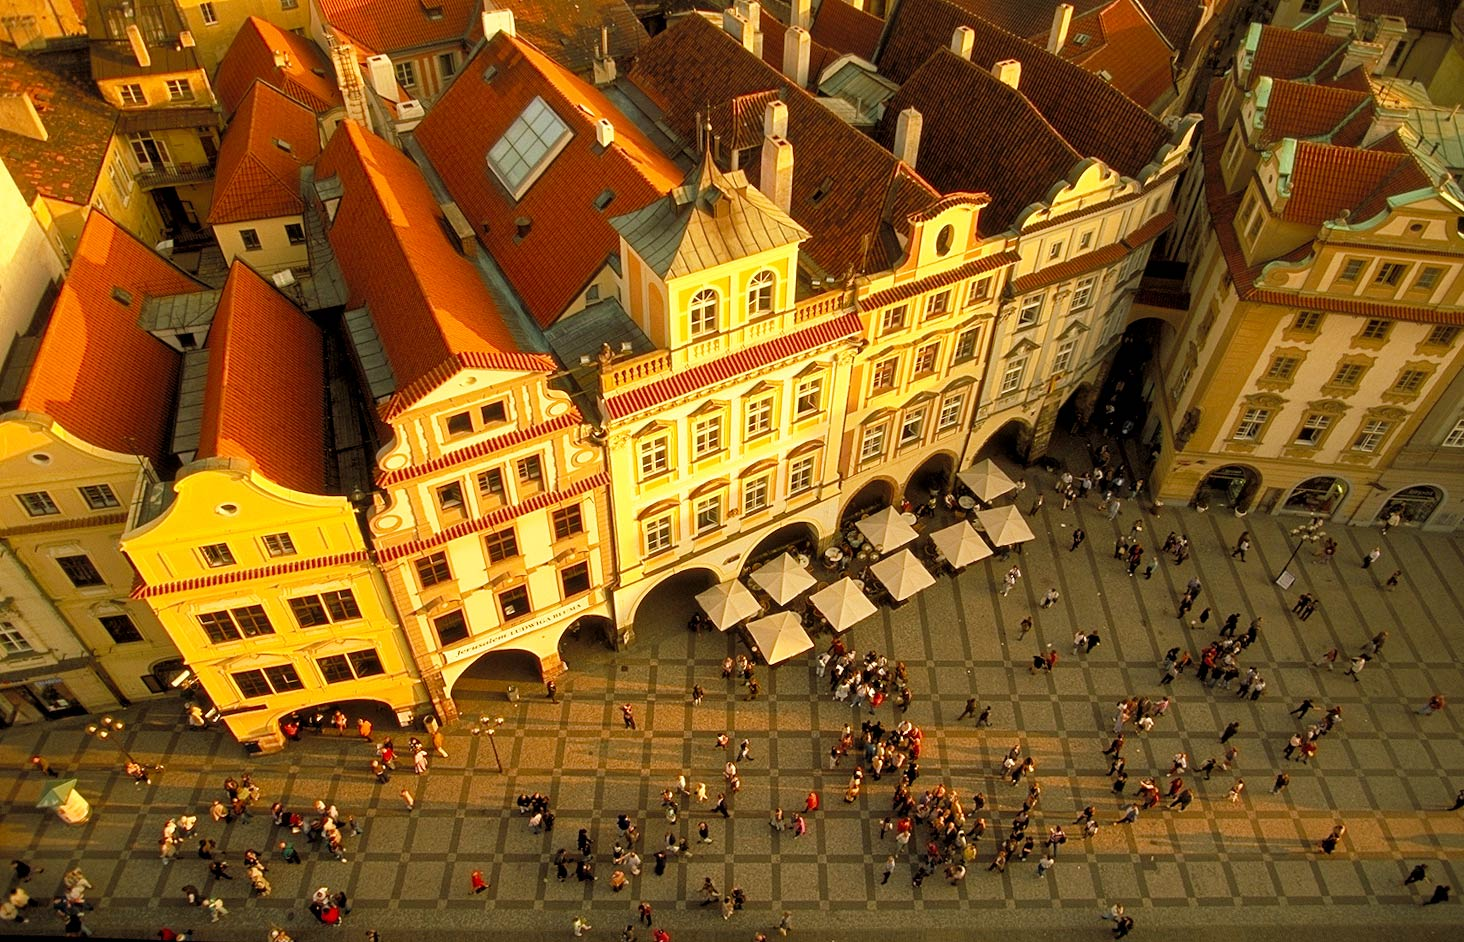 shooting down from clocktower in Prague in Czech Republic